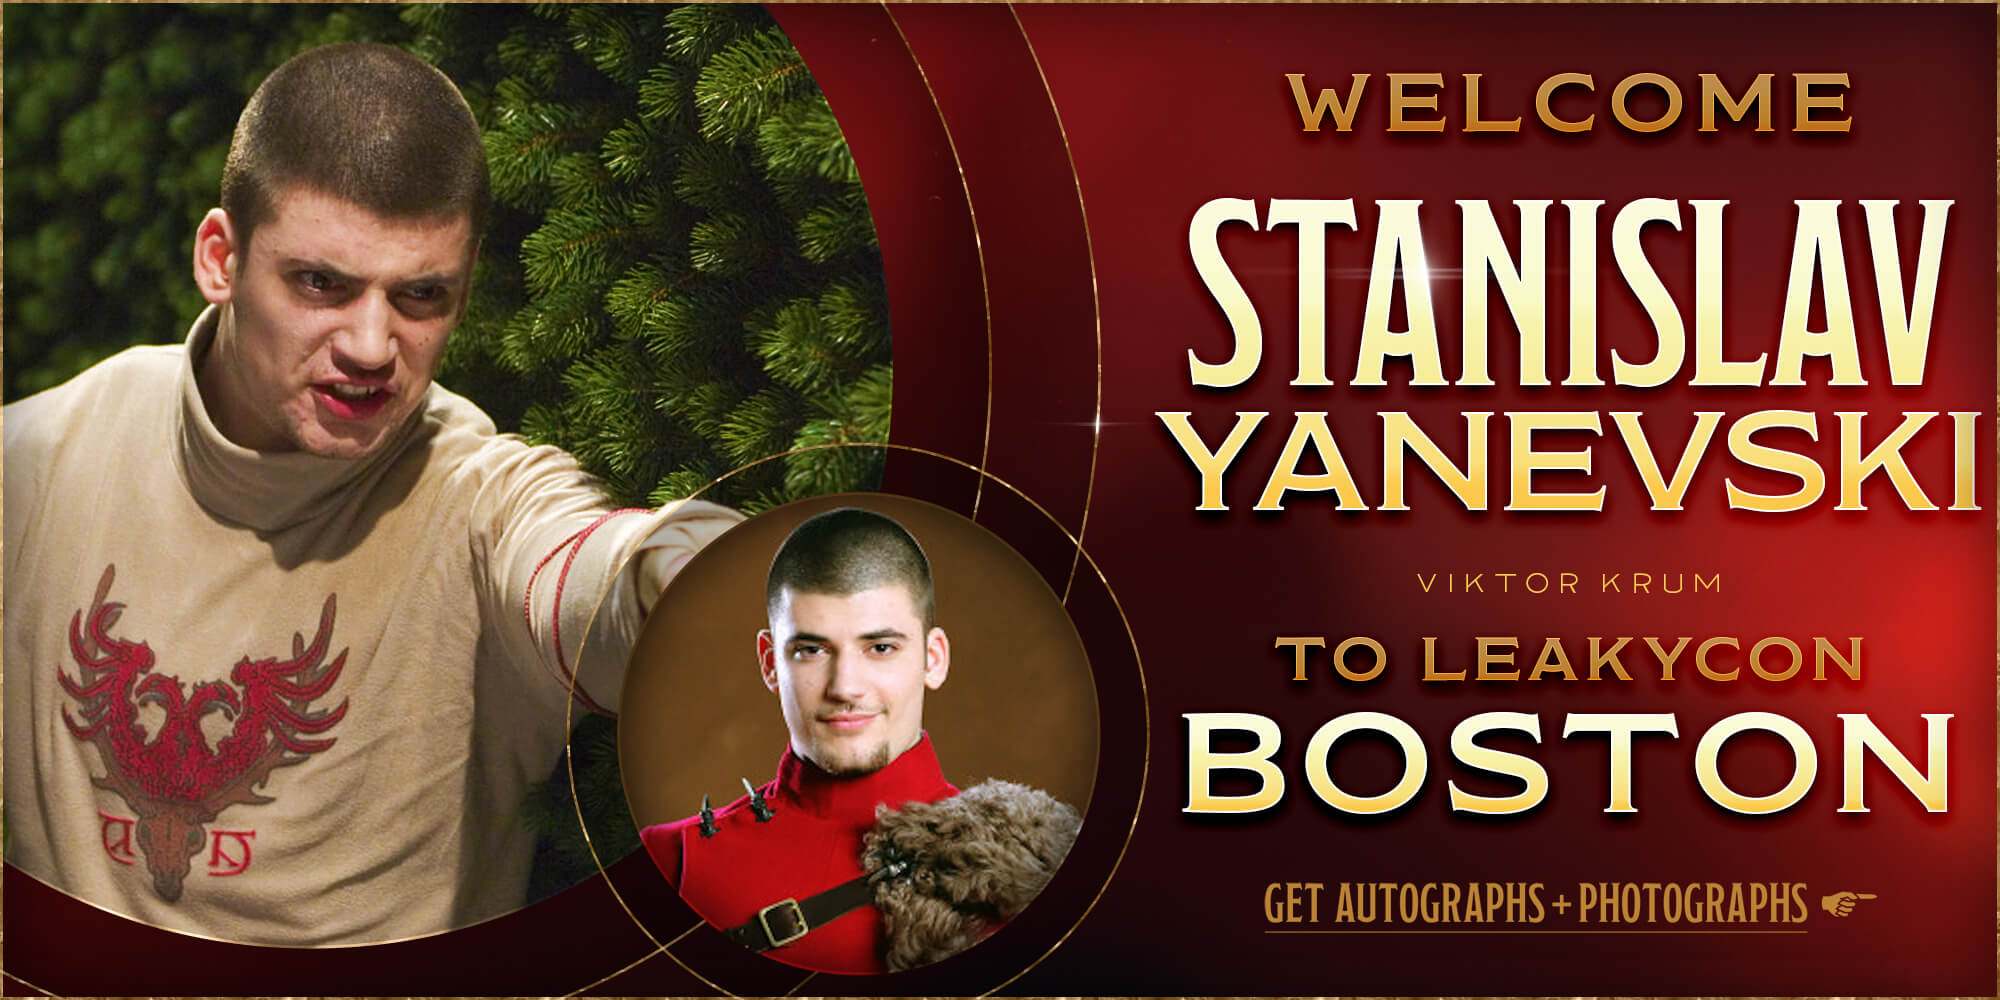 Meet Stanislav Yanevski at LeakyCon Boston